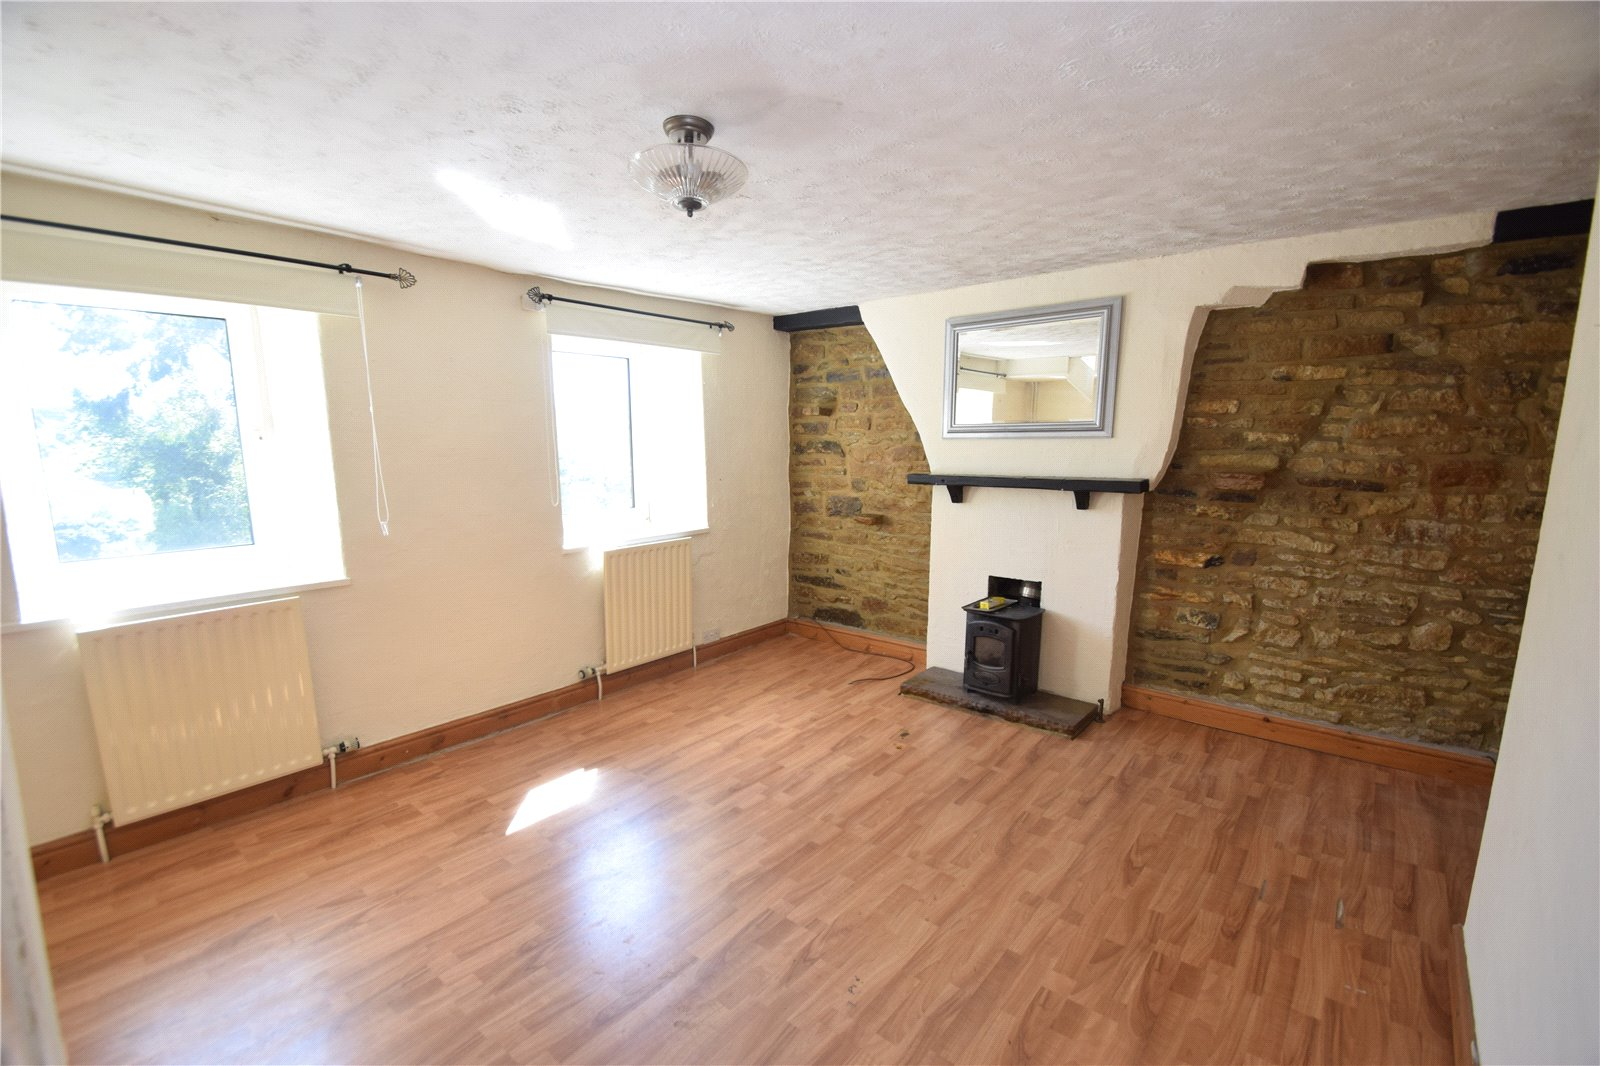 Yorkshire Terrace: Whitegates Keighley 2 Bedroom House Let Agreed In Laycock